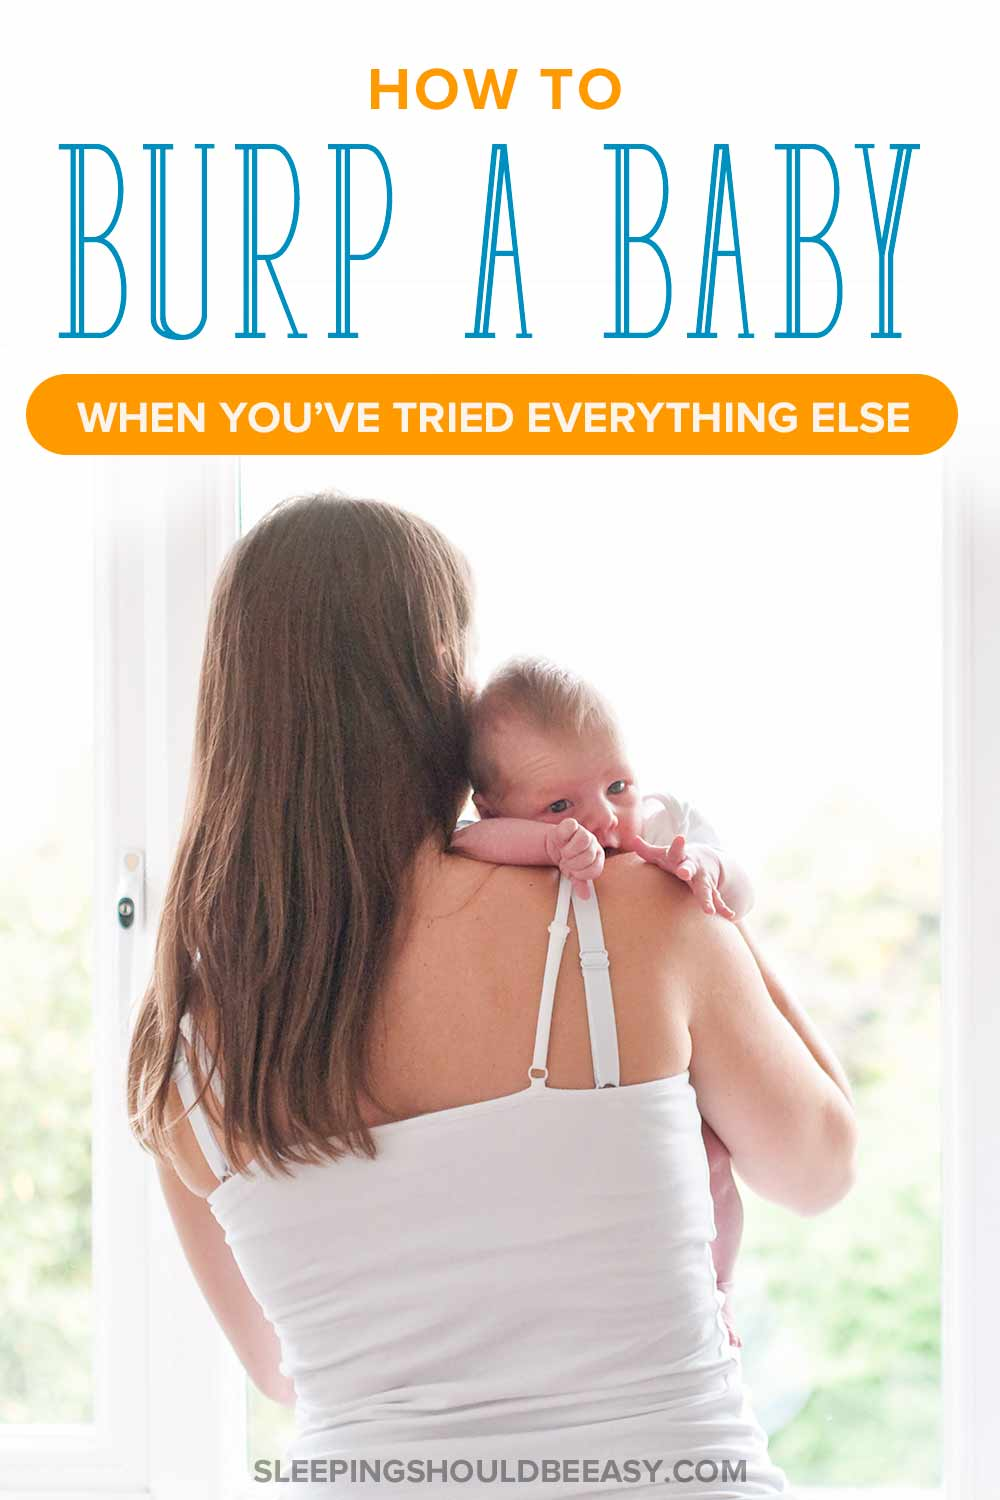 How to burp a baby: Woman trying to burp her baby over the shoulder